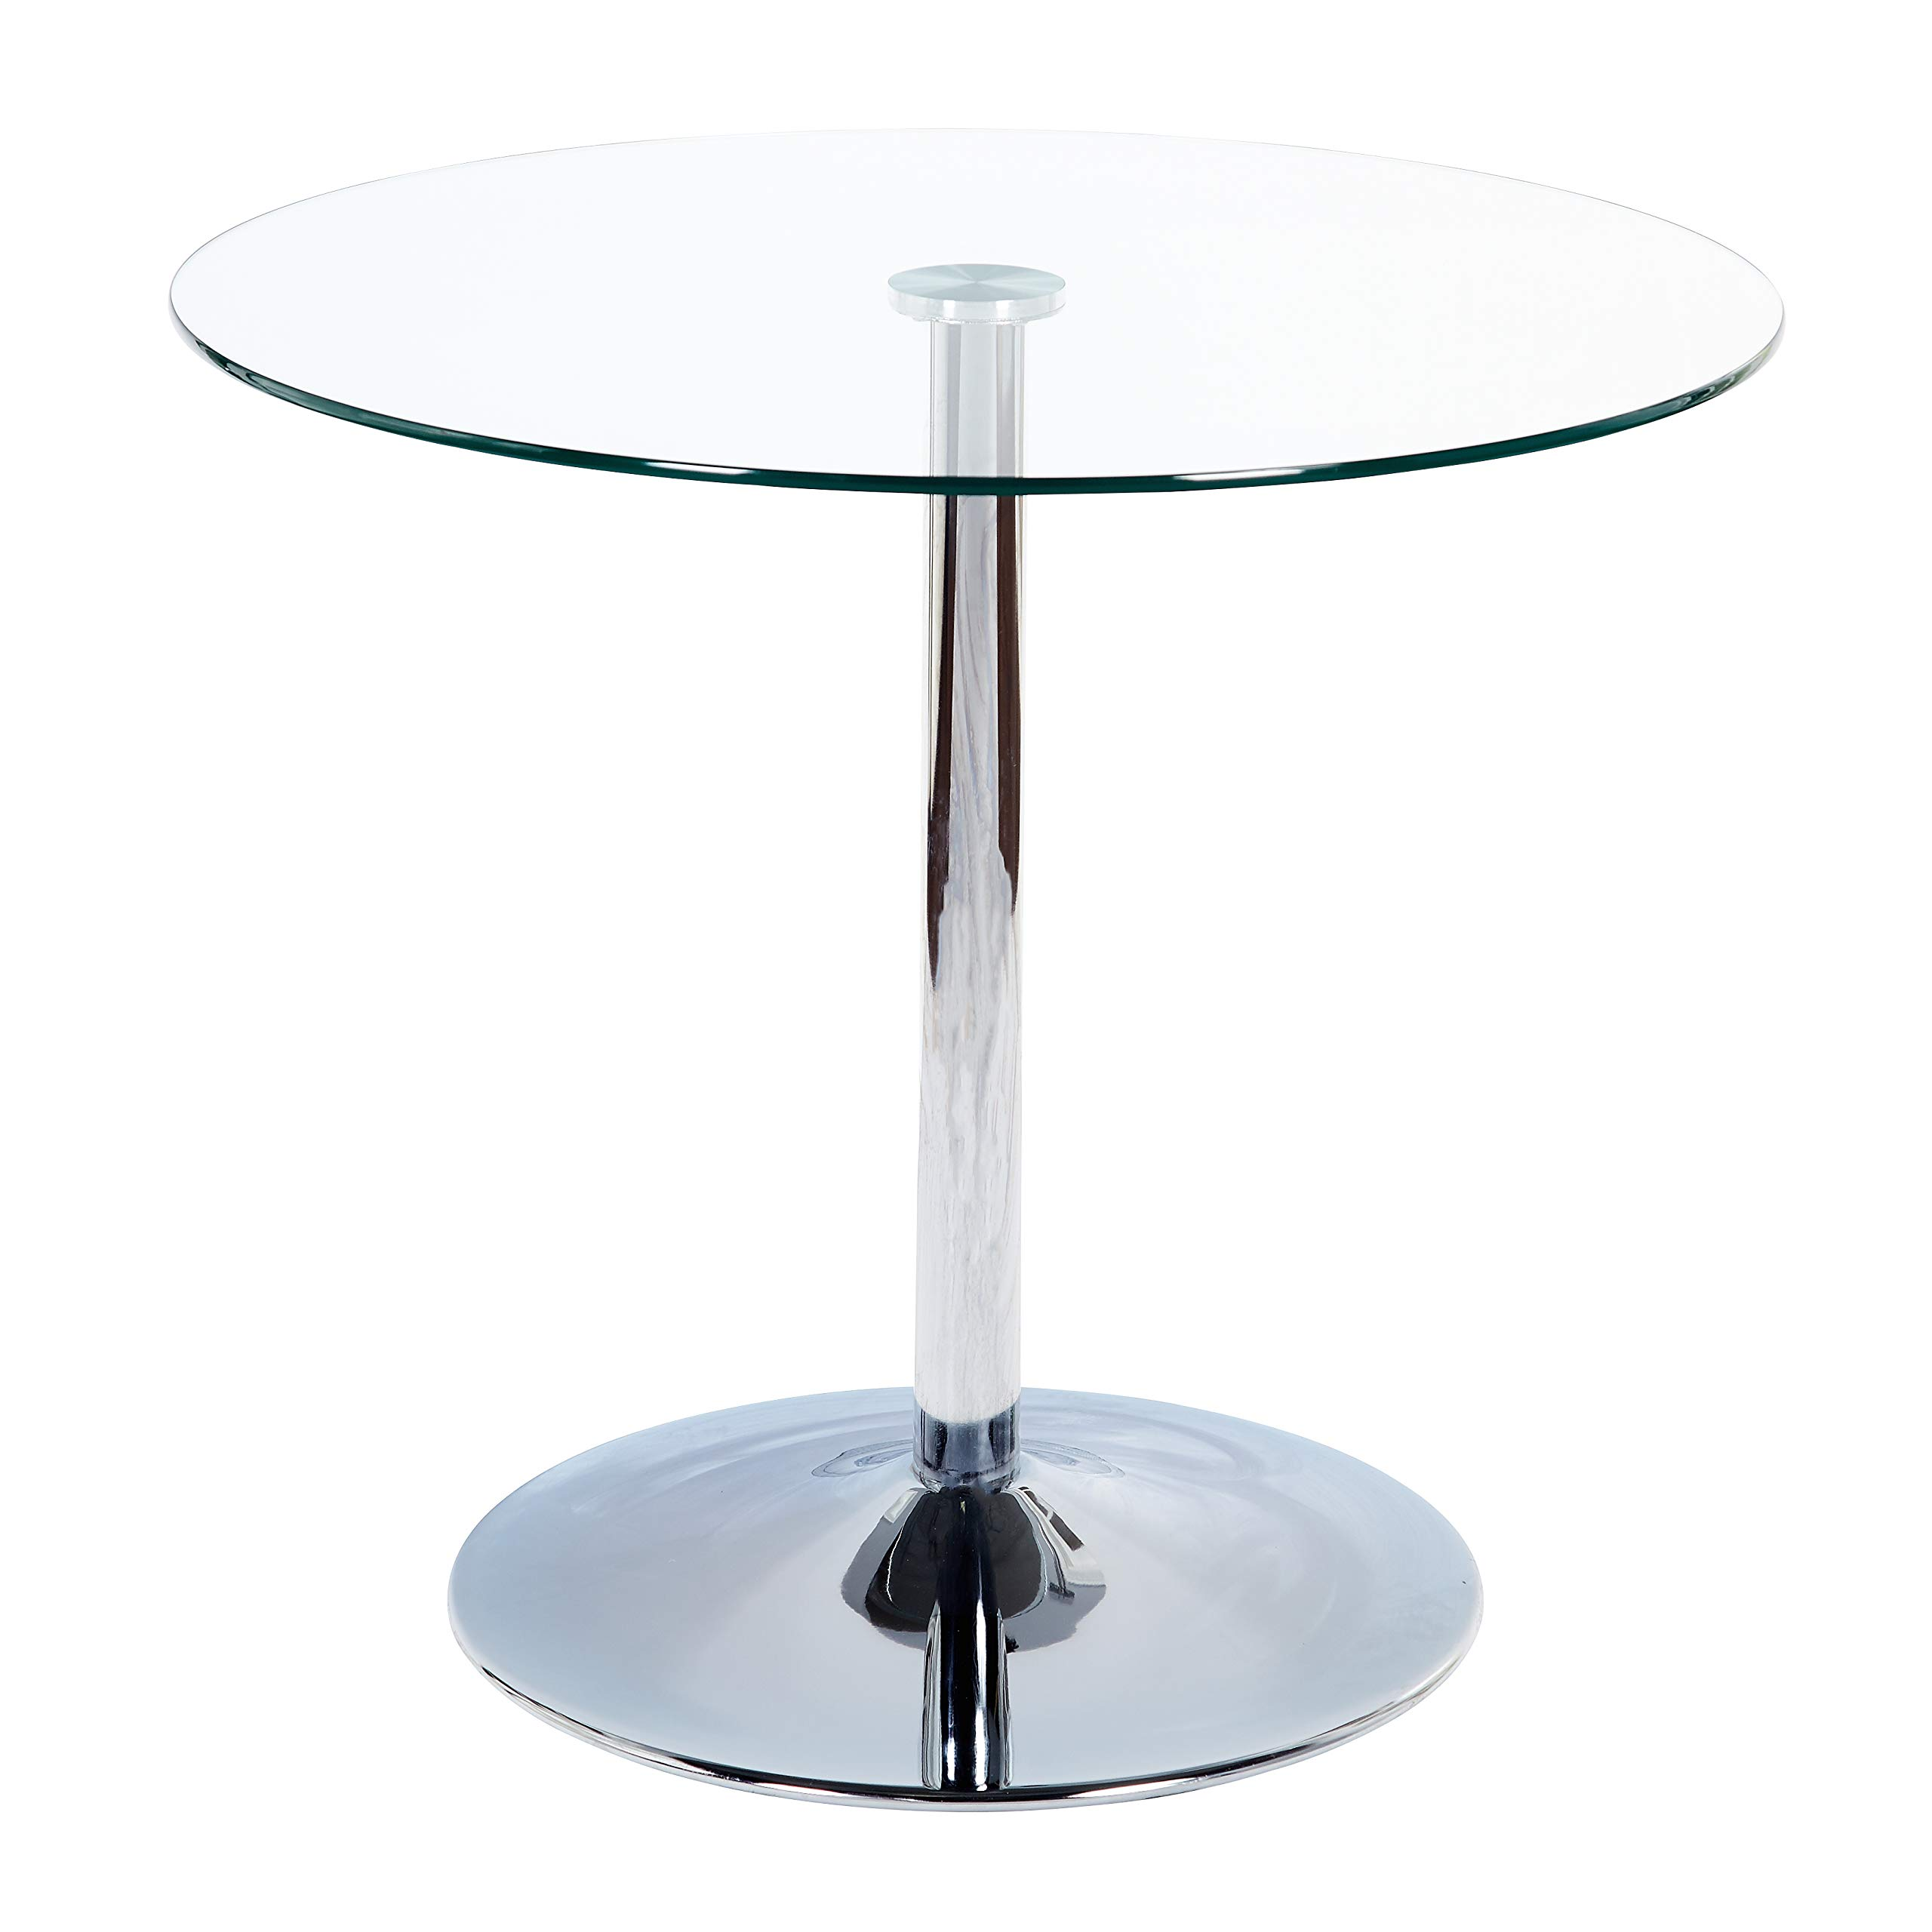 Target Marketing System 89017CLR Pisa Modern Retro Round Dining Table, 35.4'' W, Clear by TMS